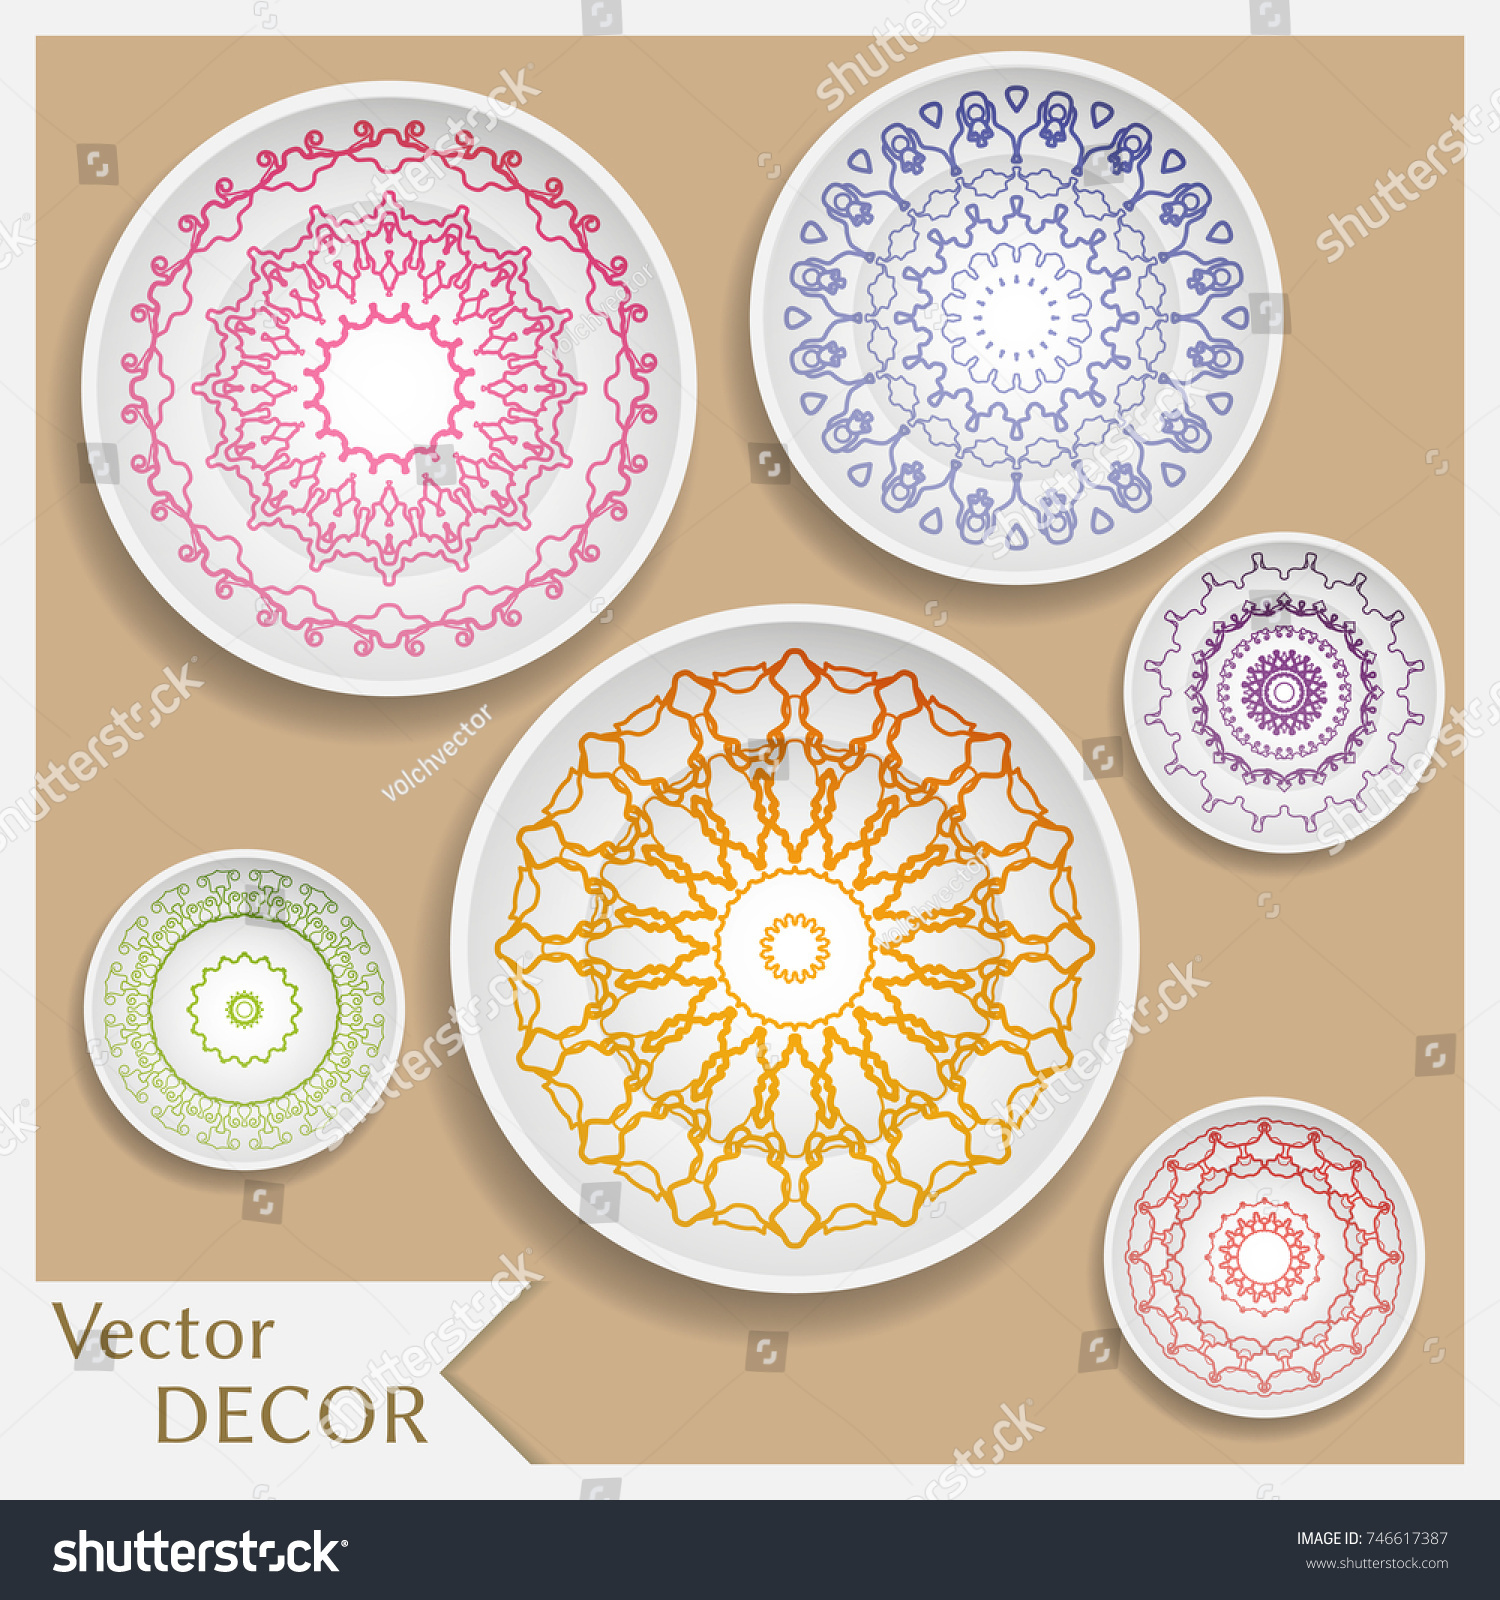 Outstanding Decor Wall Plates Images - Art & Wall Decor - hecatalog.info